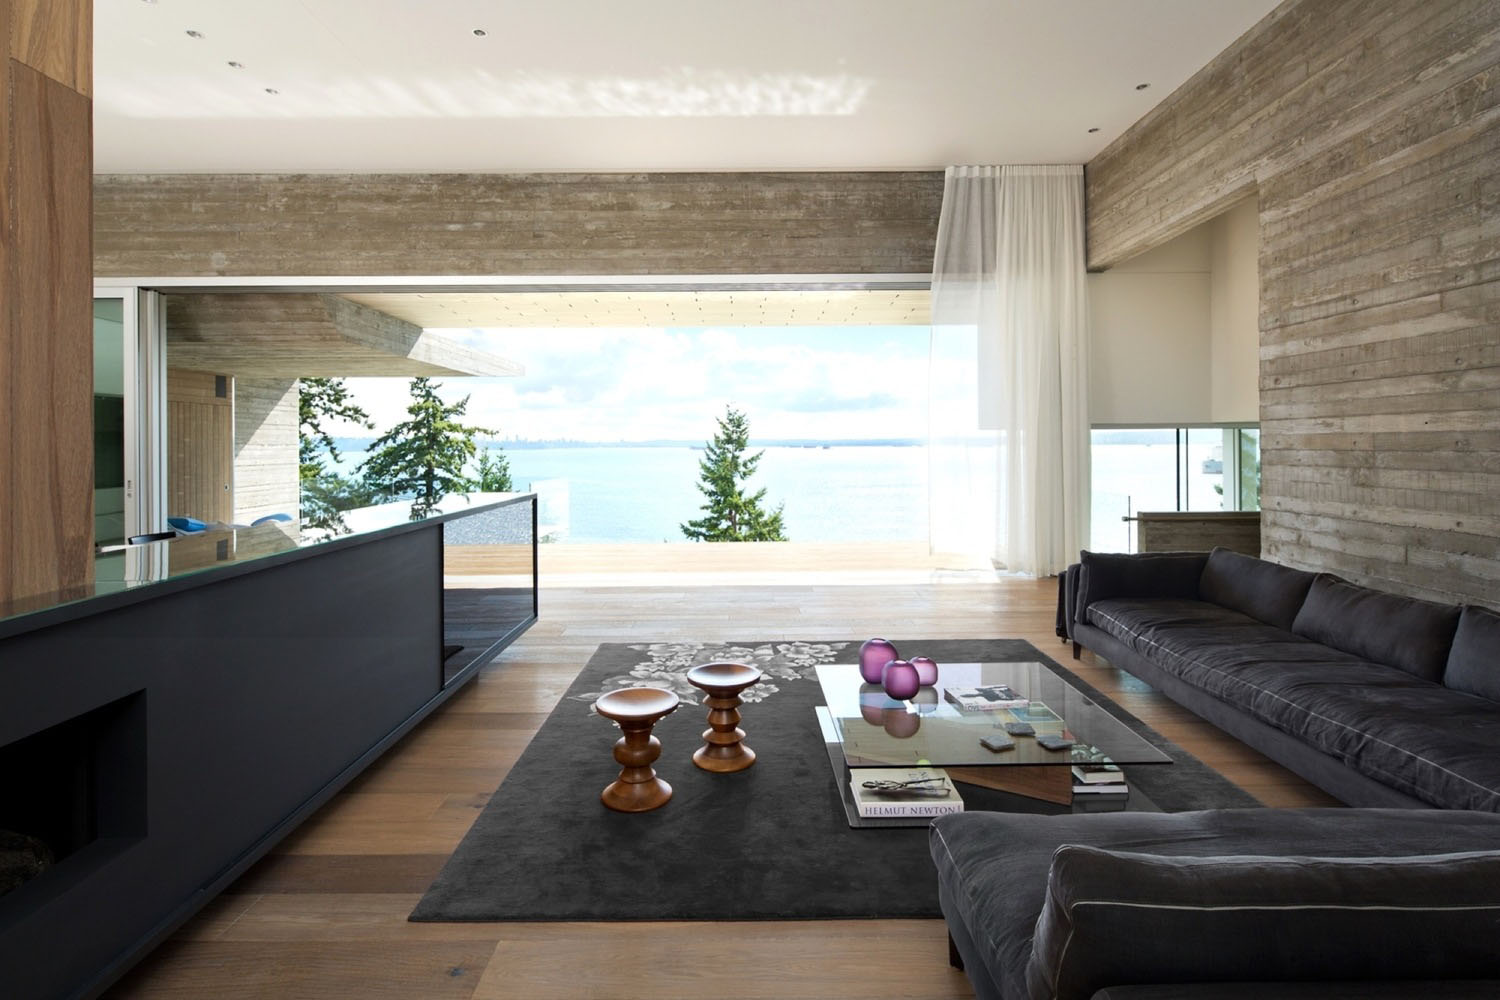 Minimalist oceanview home in israel idesignarch interior design - West Vancouver Ocean View Sunset House Mcleod Bovell_4